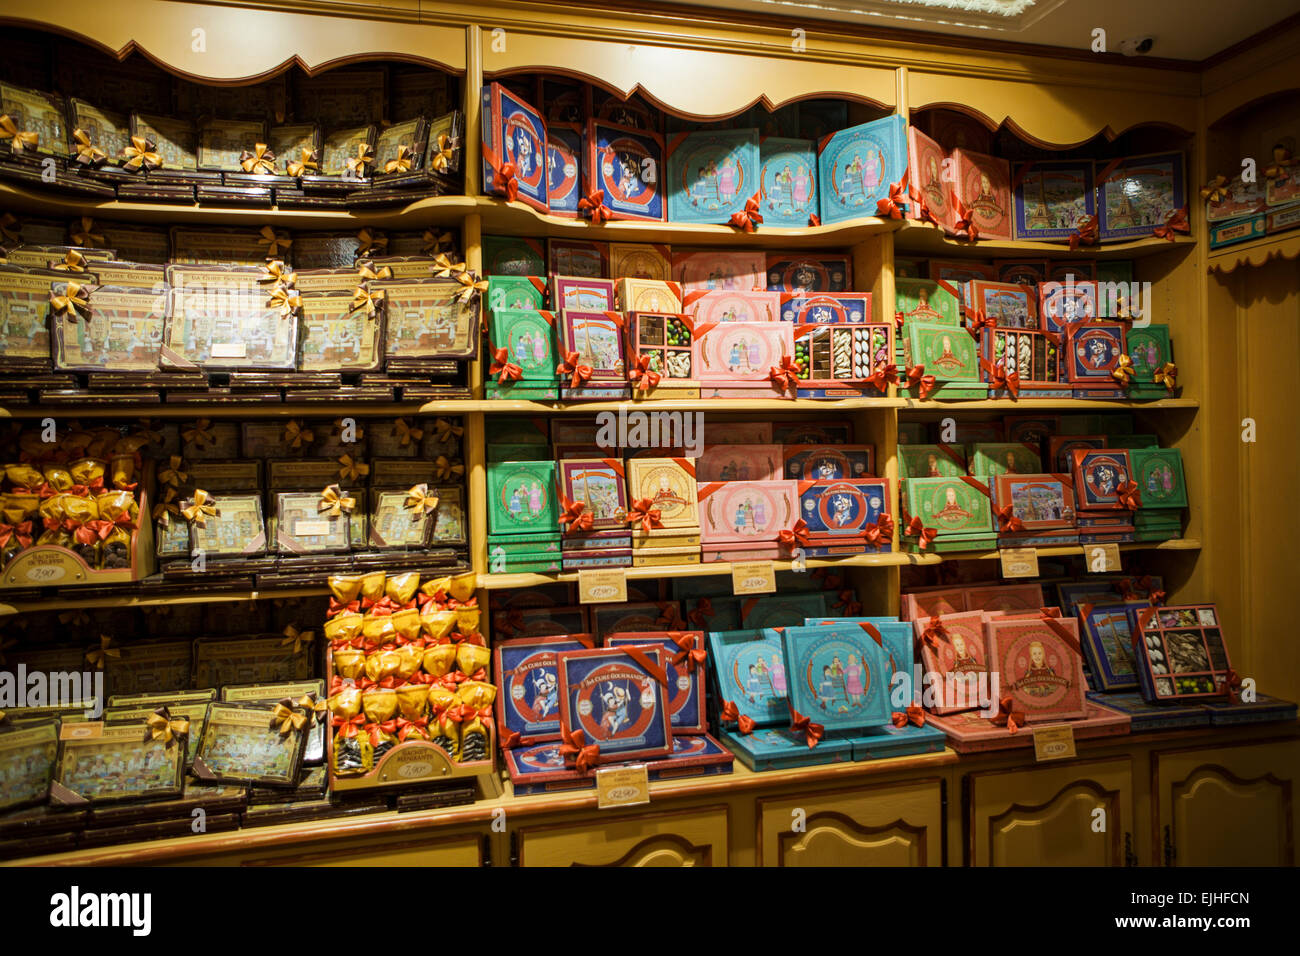 La Cure Gourmande chocolates and cookies Shop, Paris, France, interior - Stock Image